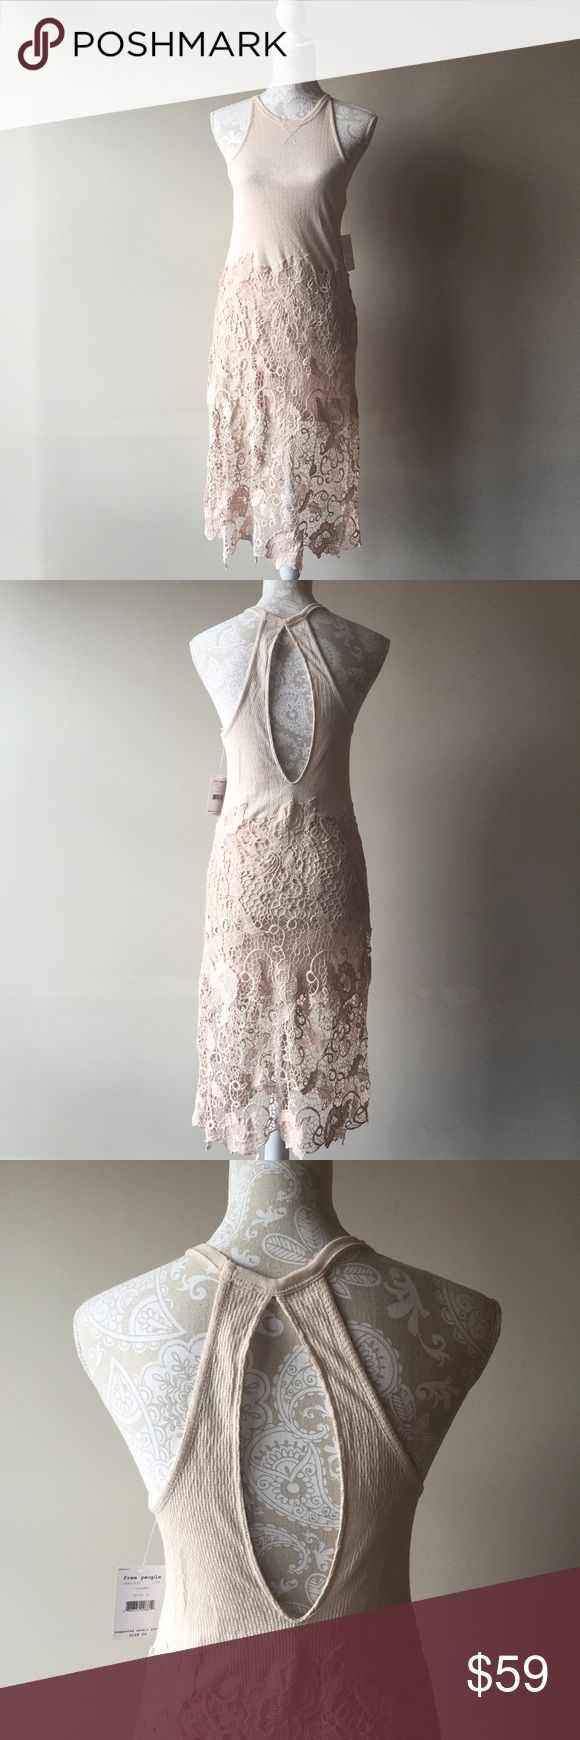 Free people cream lace midi dress Gorgeous new with tags midi dress with a lace skirt and keyhole back. Free People Dresses Midi